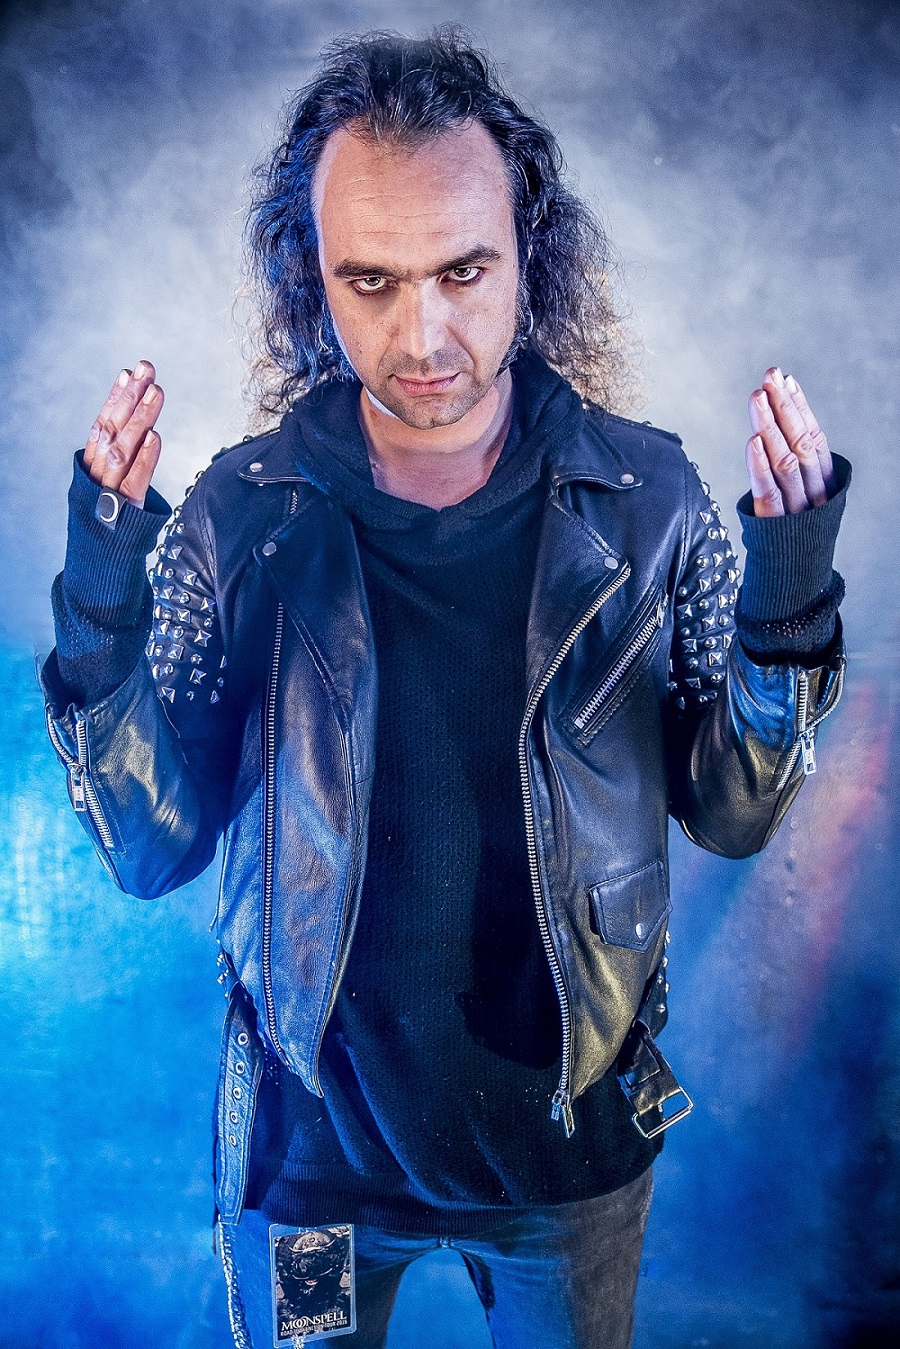 MOONSPELL 2020interview2